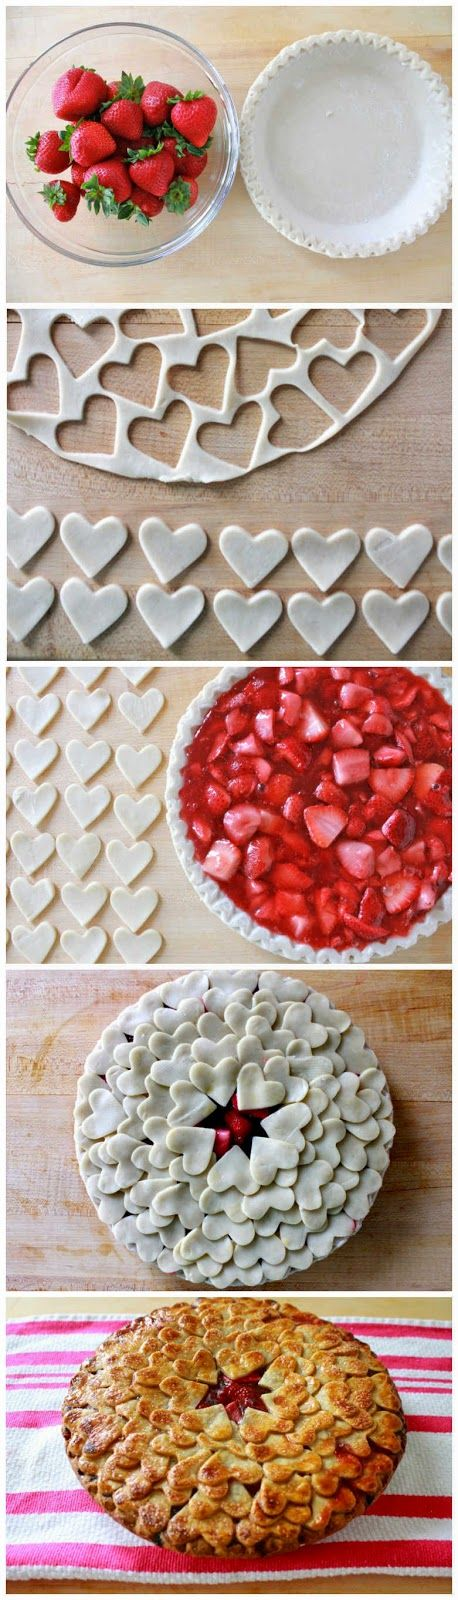 Strawberry Heart Pie - Sweetfinders..